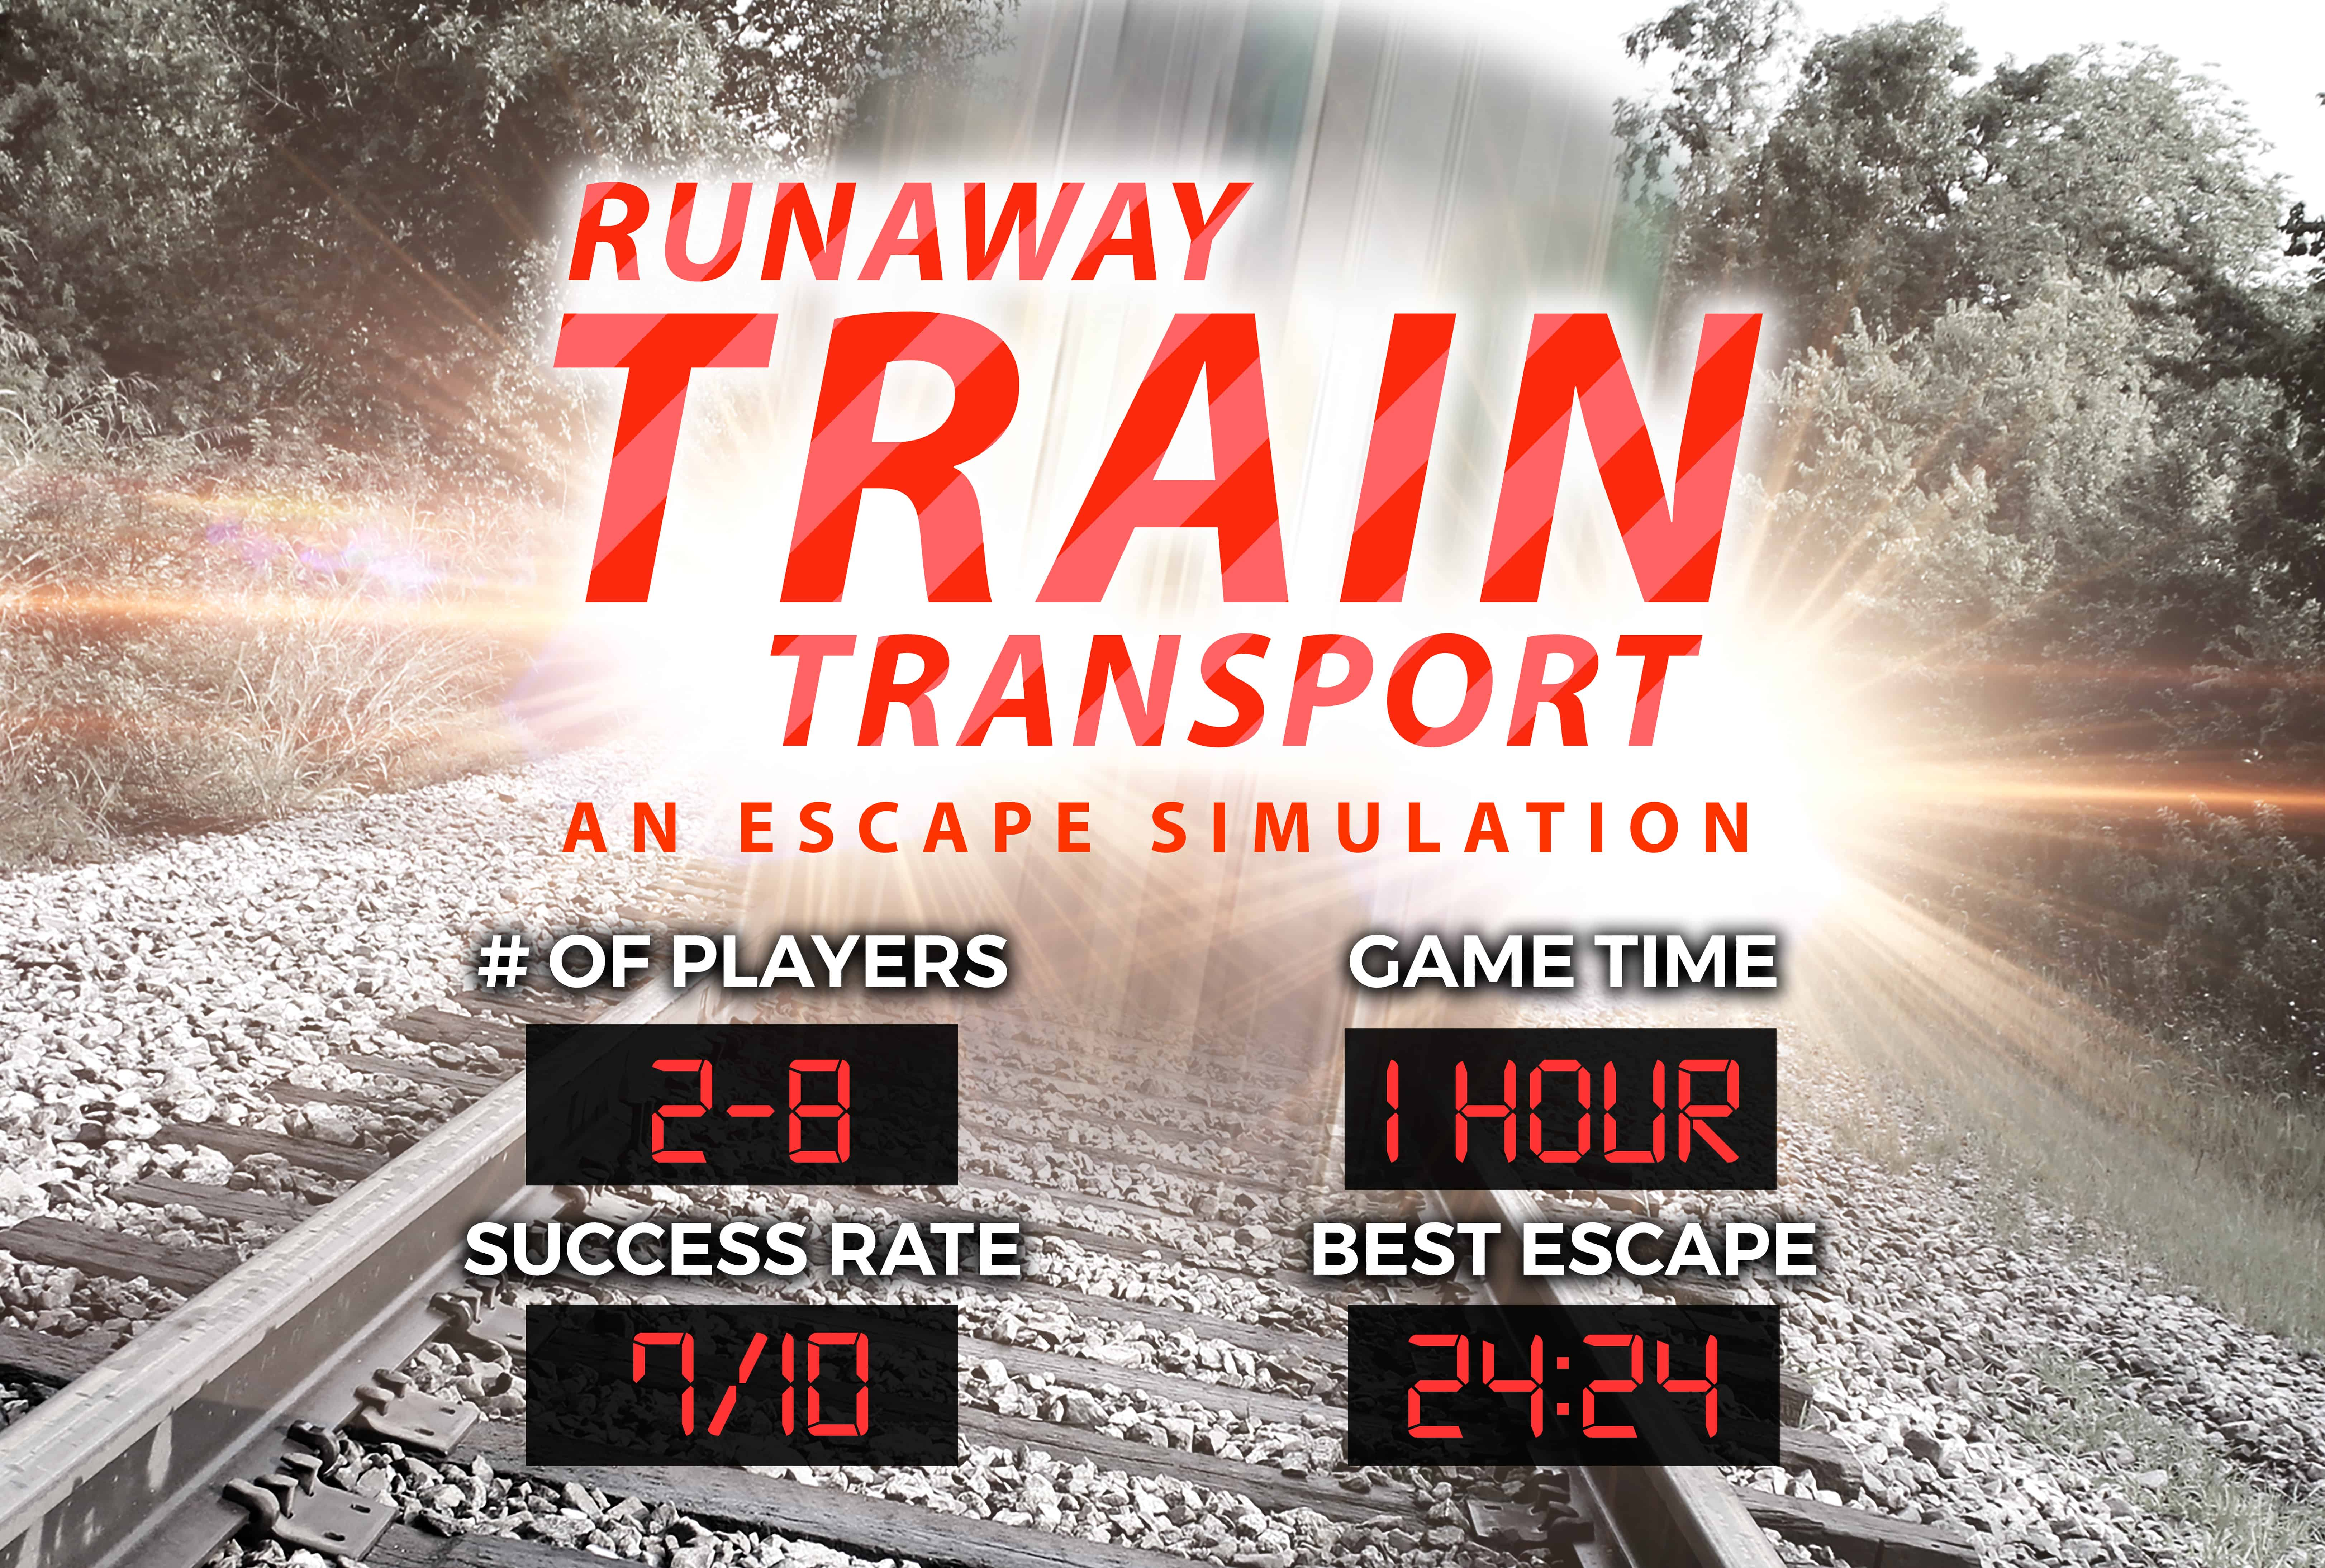 Runaway Train Escape Experience Chattanooga Breakout Escape Room Games